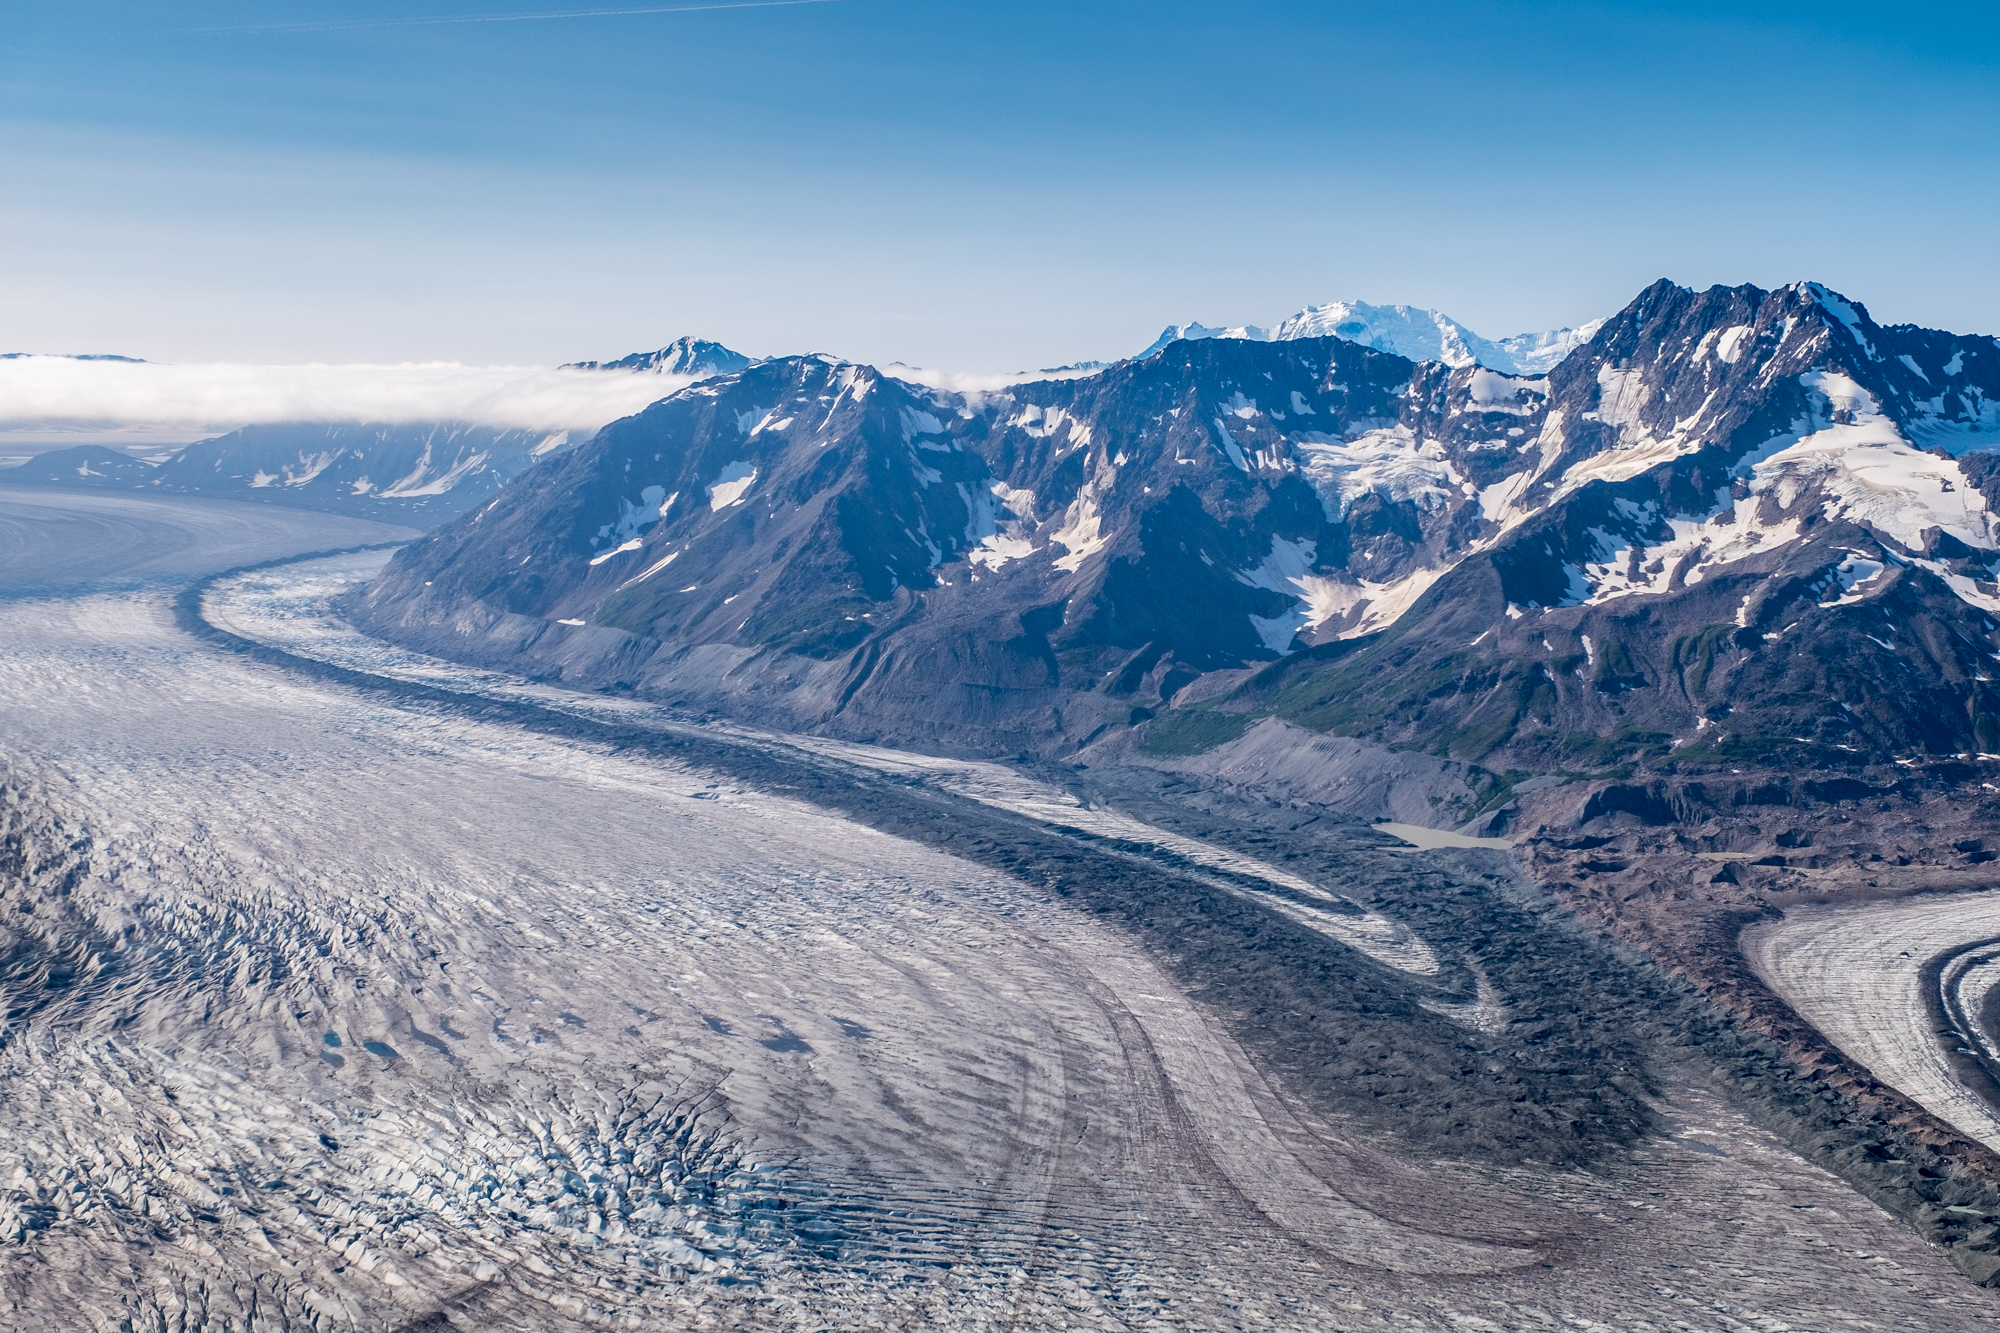 Wrangell St. Elias National Park and Preserve in Alaska from the air, shows the variety of distinct geological features that comprise this amazing region in southeast Alaska—glaciers, ice fields, alpine mountains, moraine, tundra...and that's just what you can see in this photo!